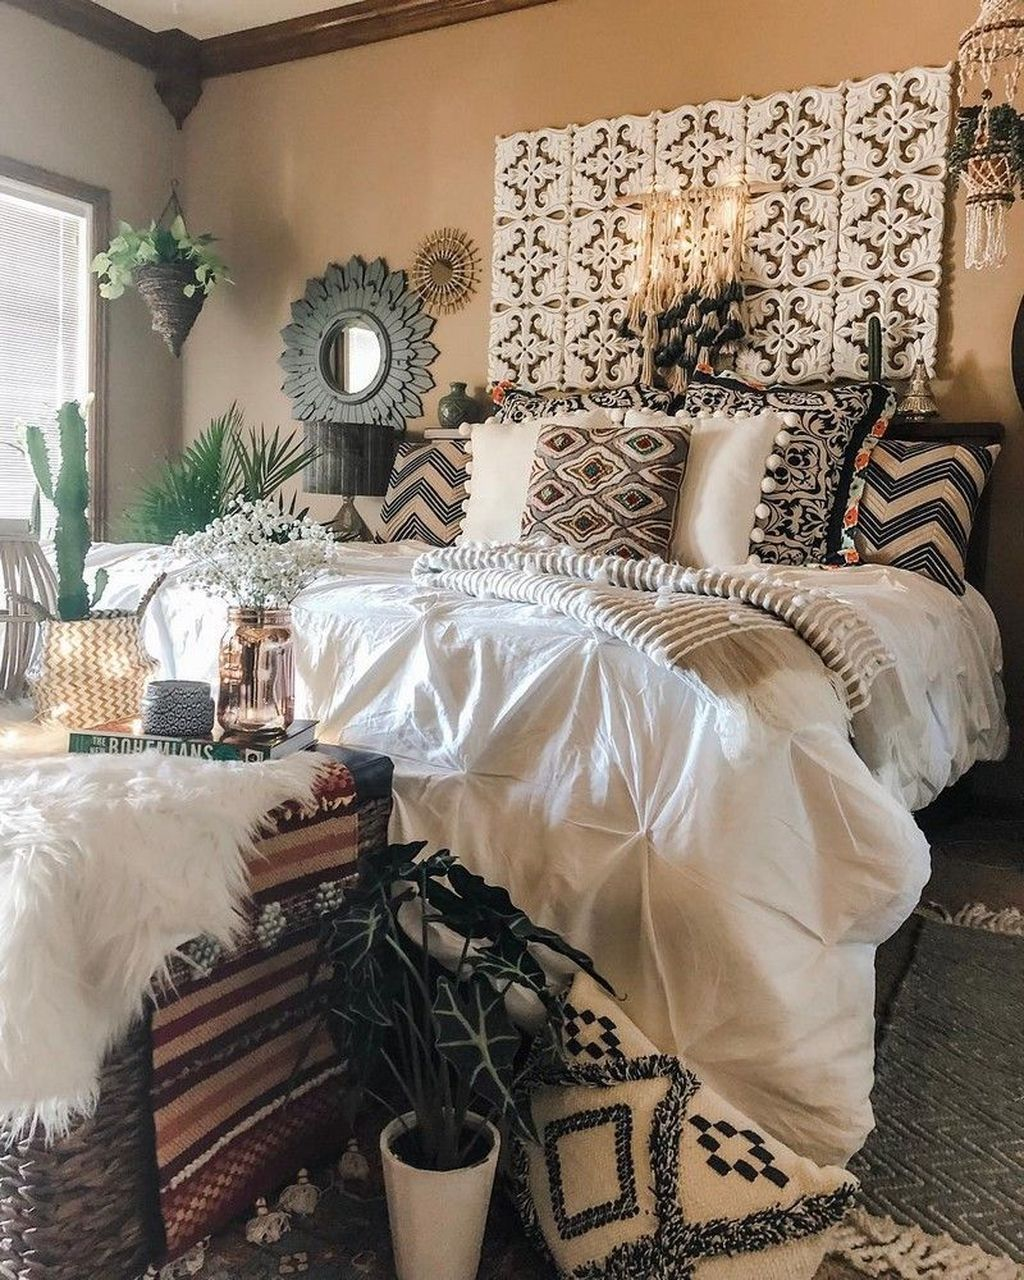 Get Ready To Have The Bedroom Design Of Your Dreams With Our Ideas Http Www Homedesignideas Home Decor Bedroom Boho Bedroom Design Bohemian Bedroom Decor